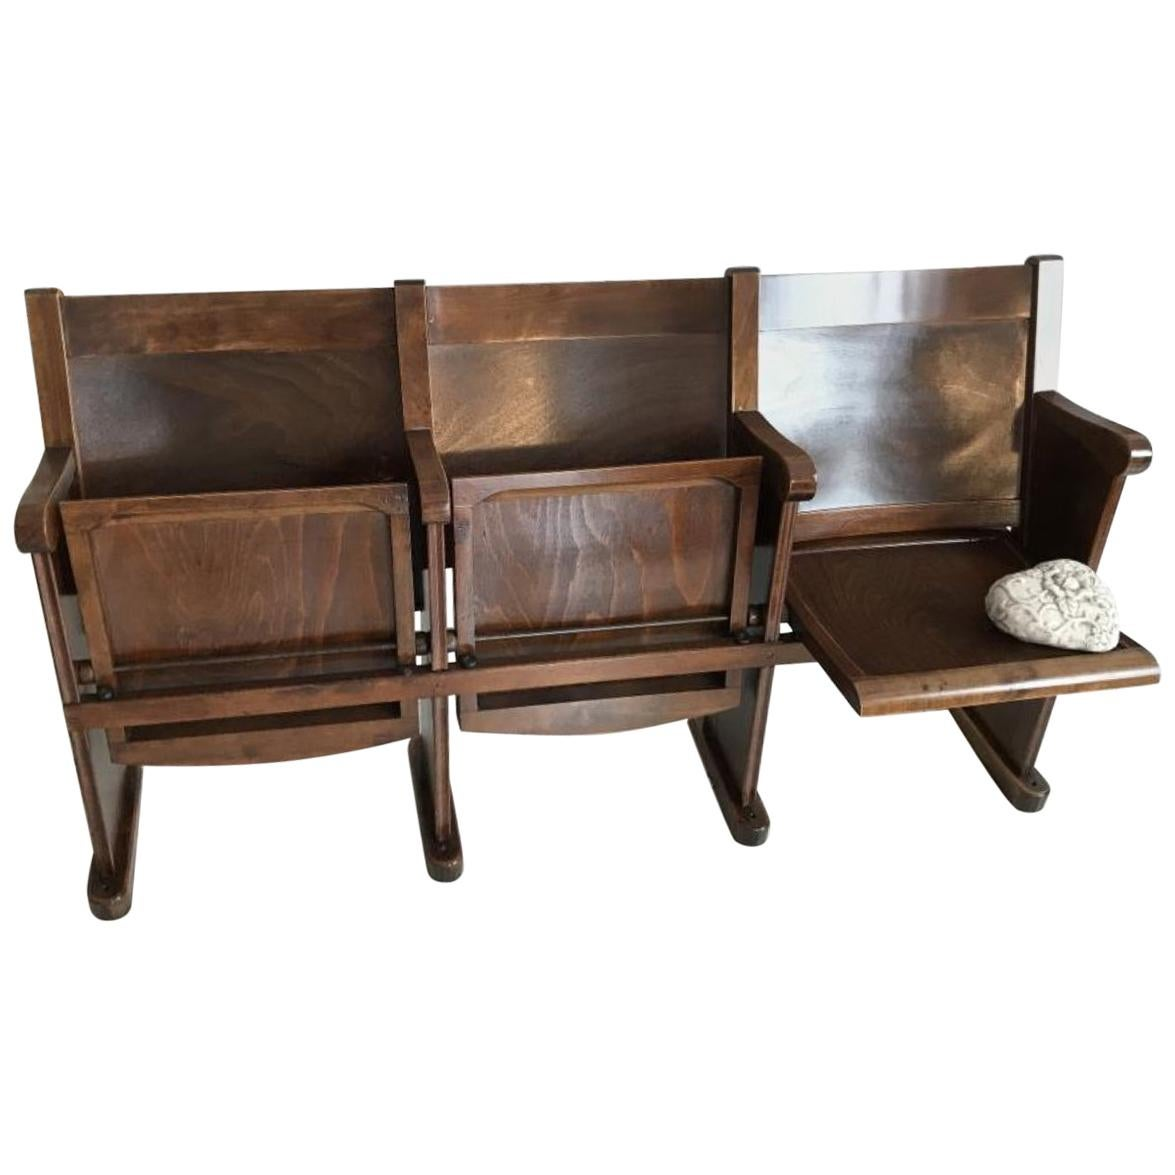 Sofa Jequitiba Nova America Rosenthal Studio Line Designer Leather Chair Black One Seat Wood Vintage